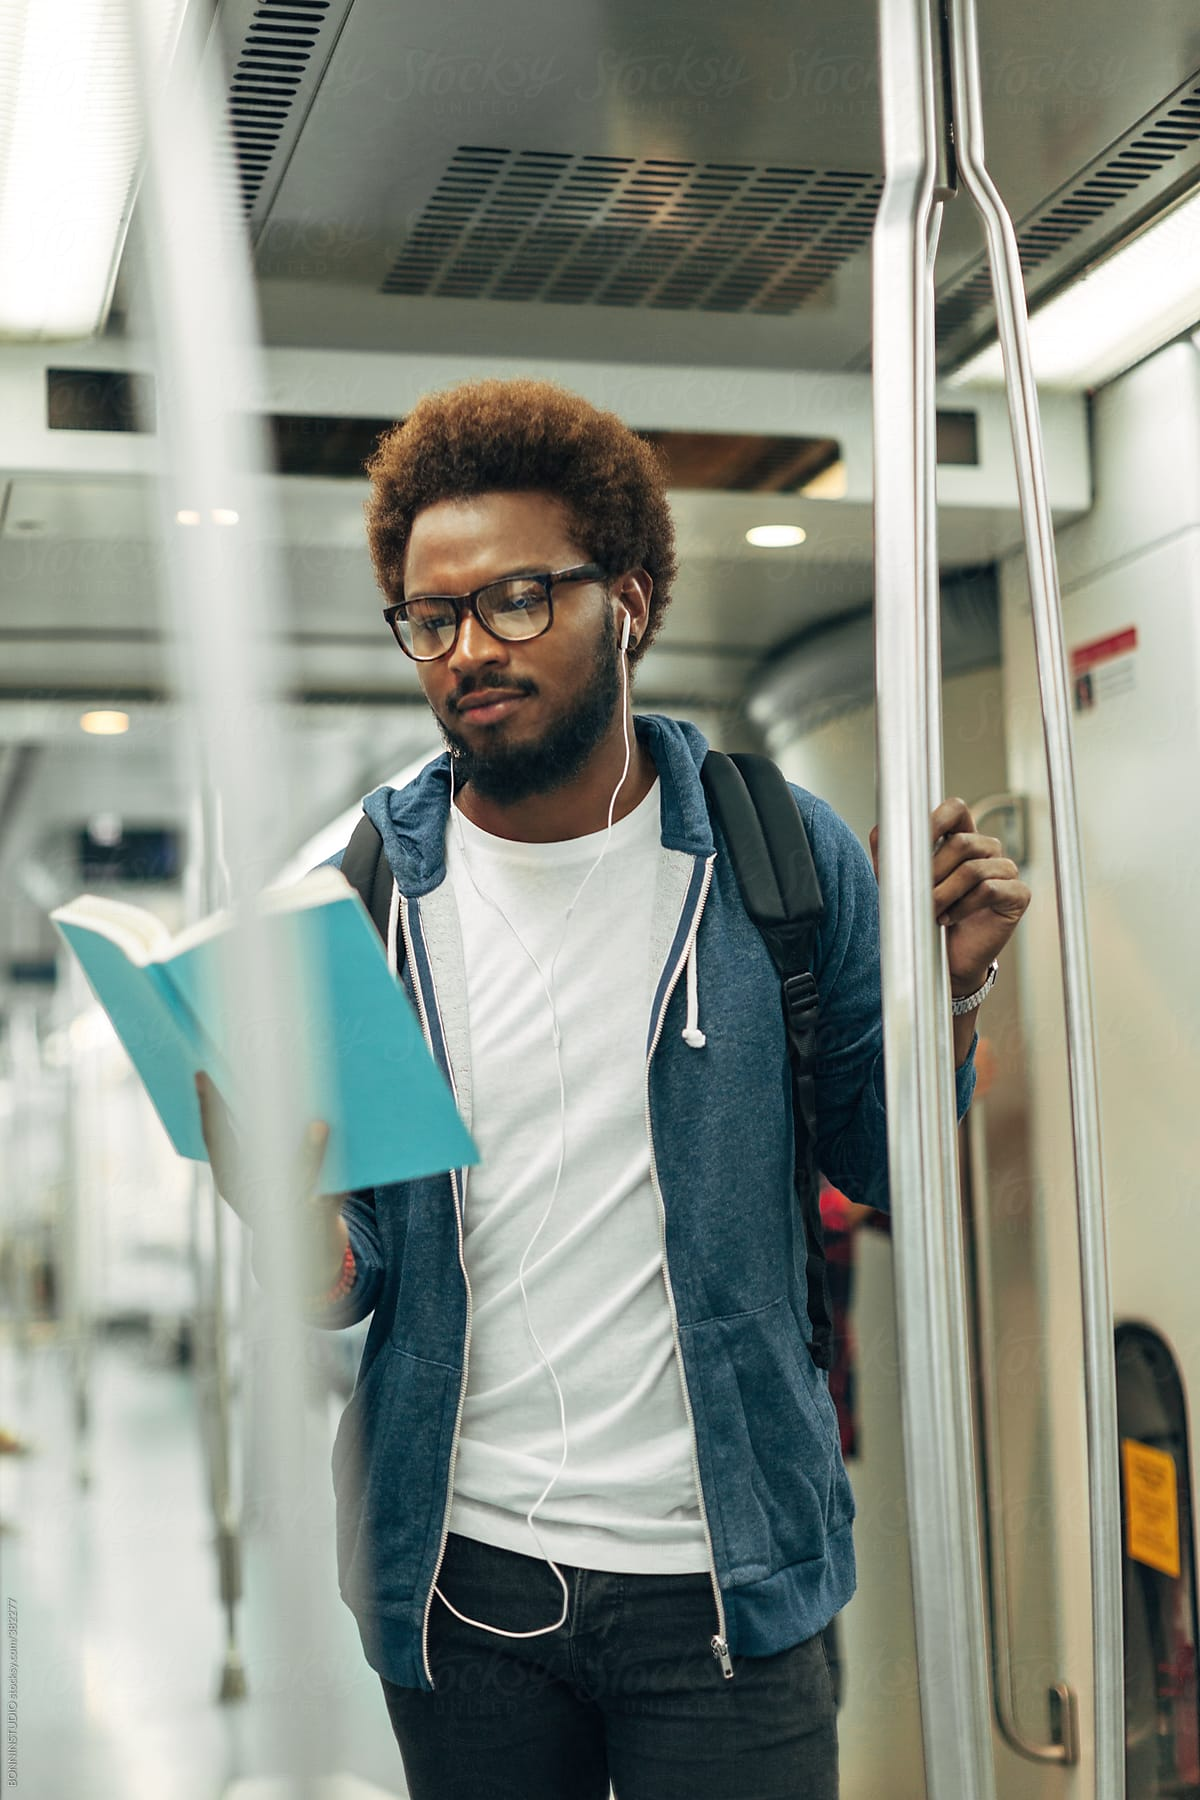 Afro Black Man Reading A Book On The Subway Train. by BONNINSTUDIO